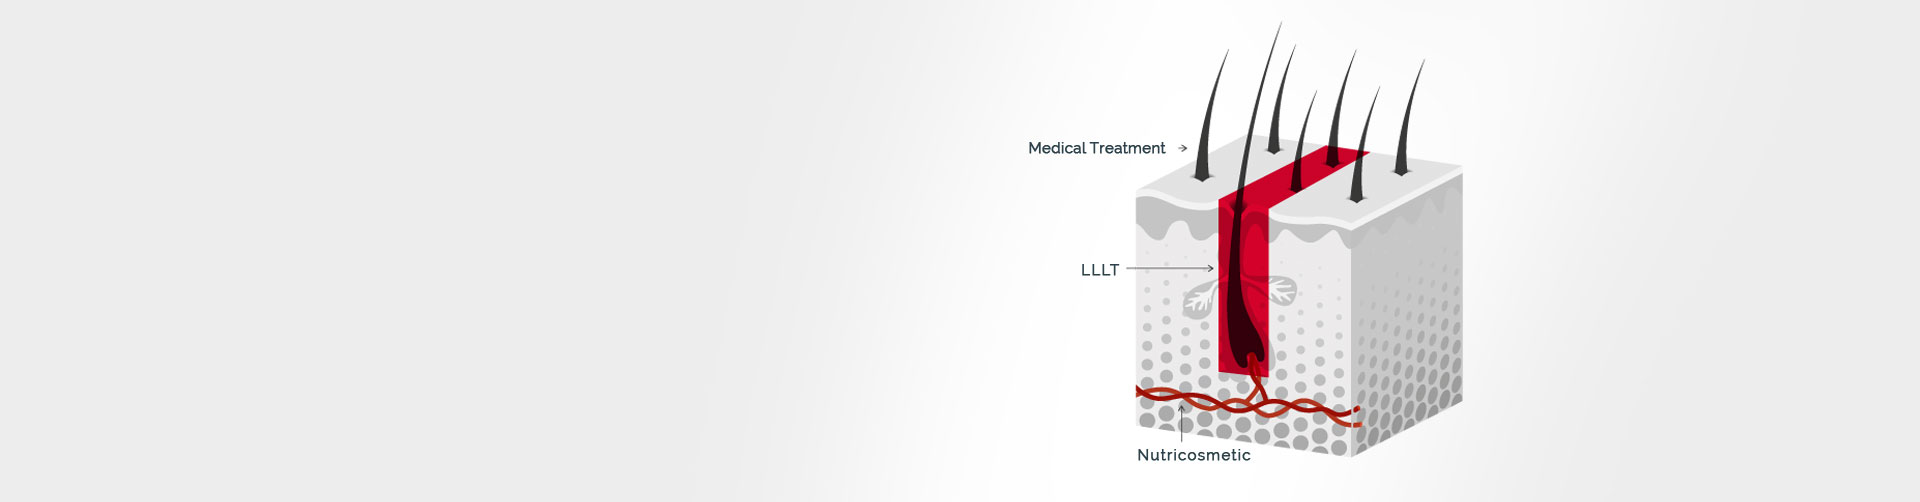 hair-loss-treatment-hr3